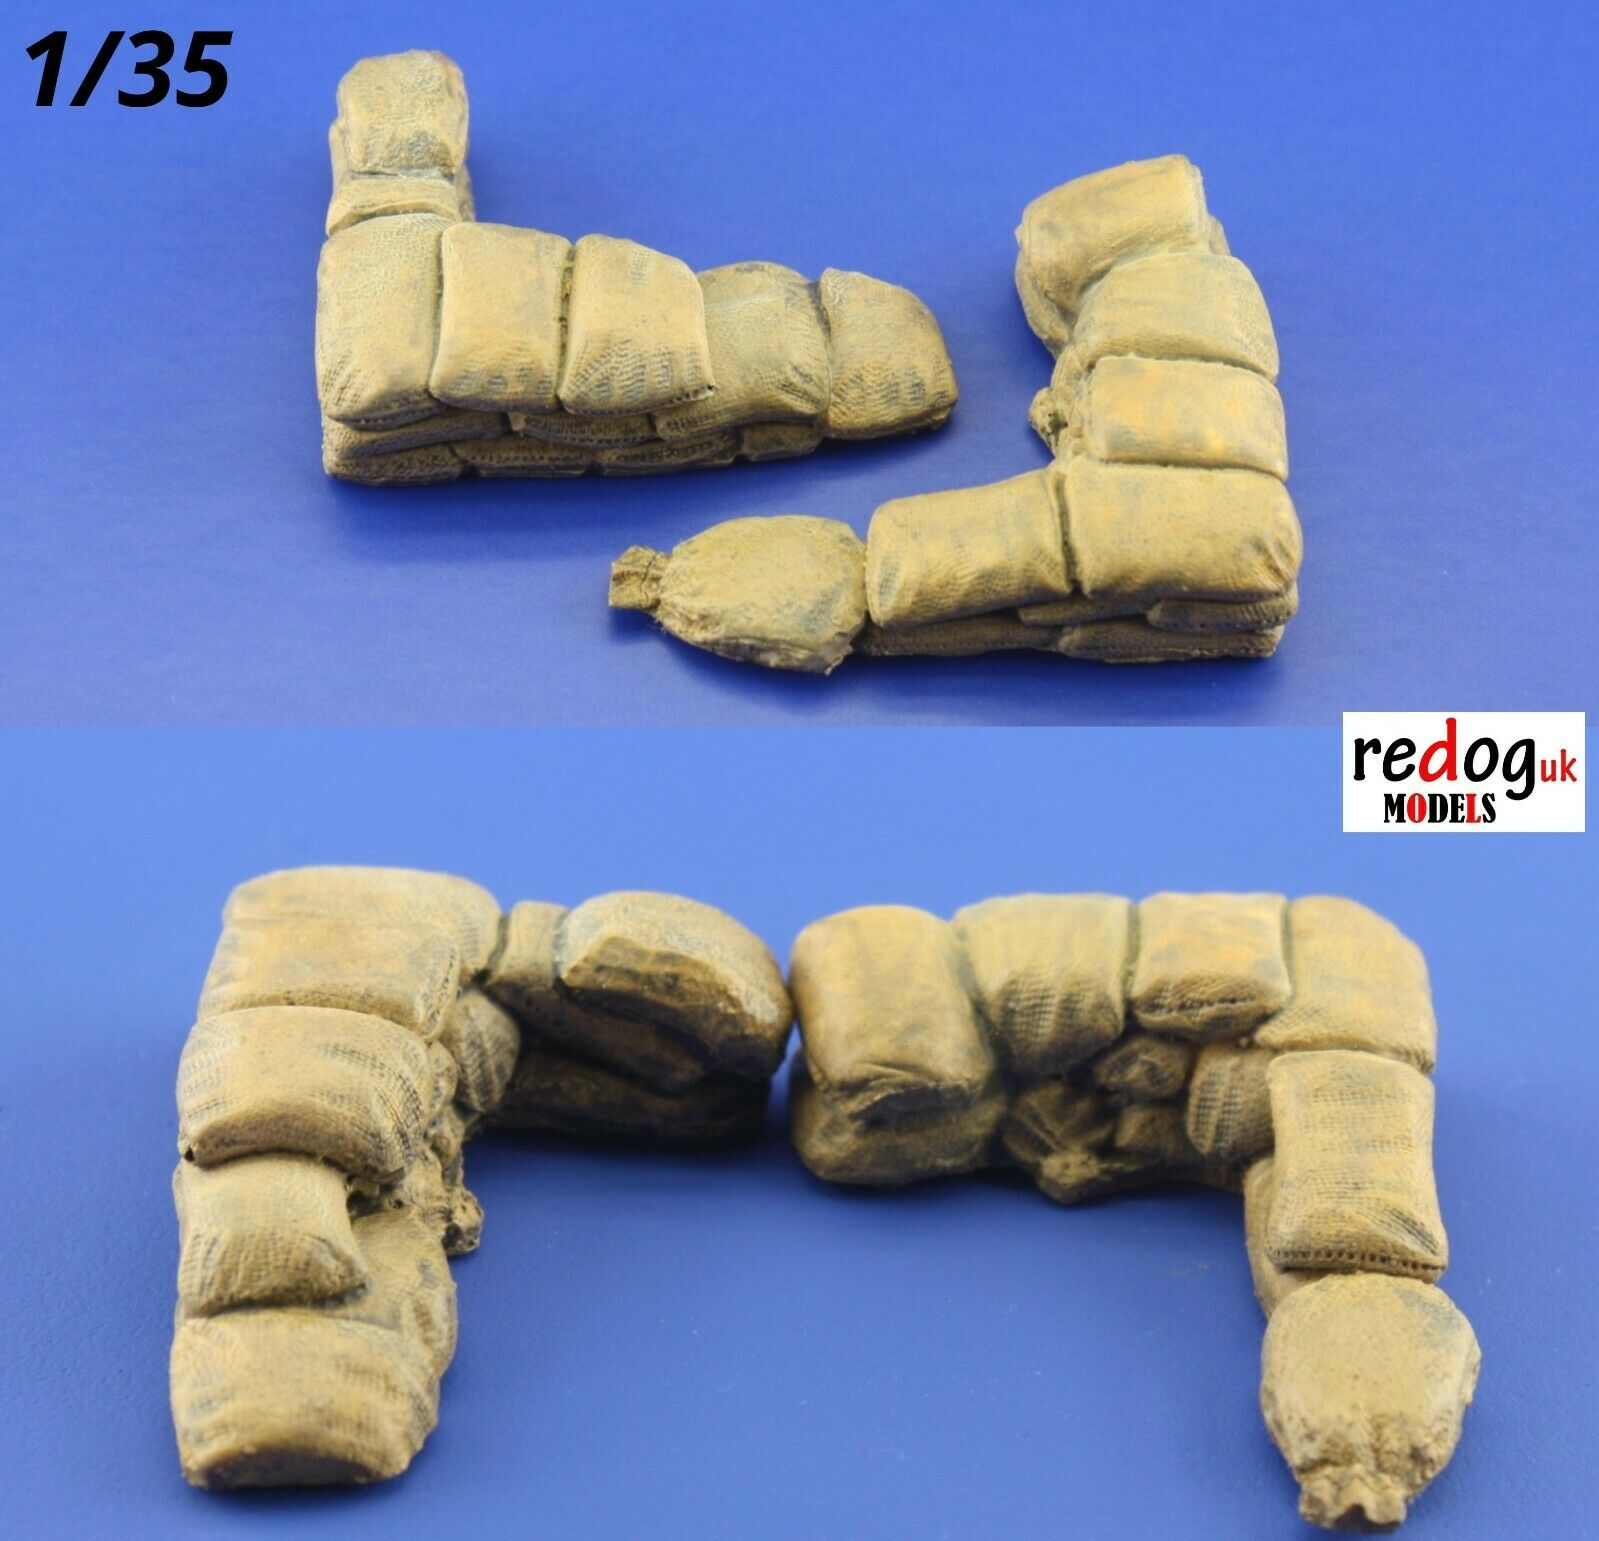 Redog 1/35 Military Sandbags for Trenches Scale Model Resin Diorama Kit 16 - redoguk